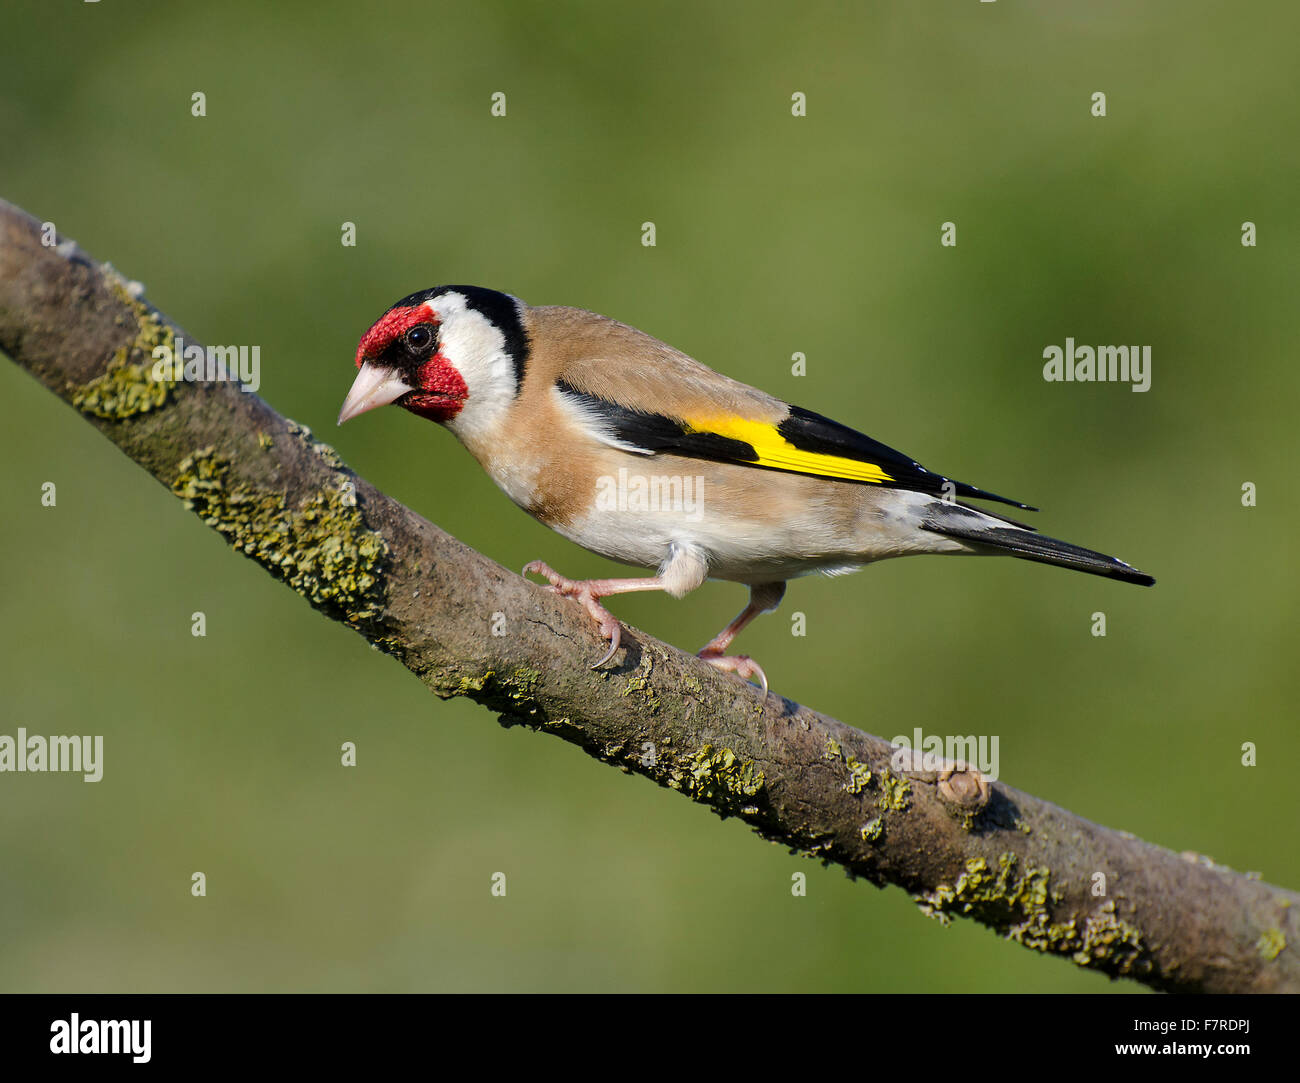 Goldfinch, Carduelis carduelis, perched on stick, in garden in Lancashire, England, Stock Photo